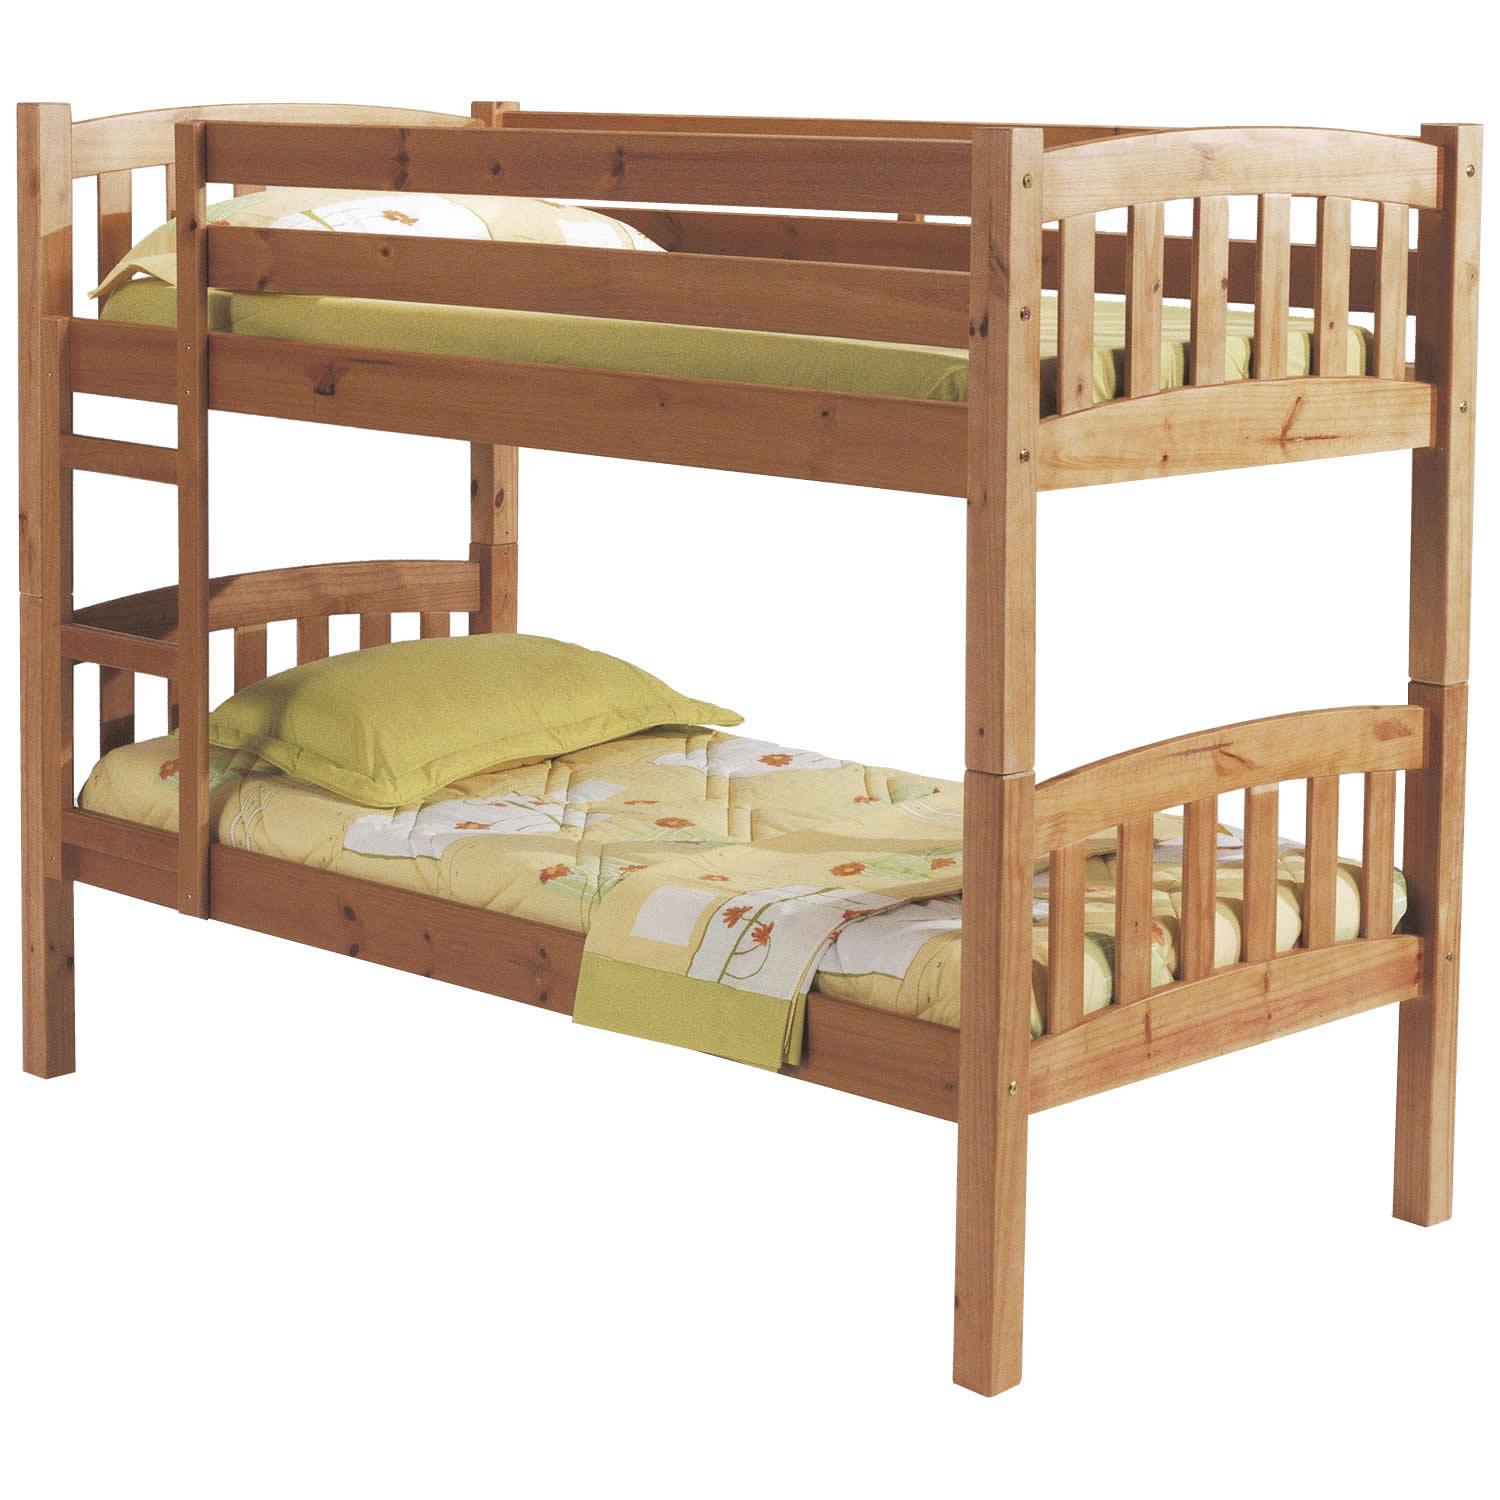 Image of: Rustic wood bunk beds